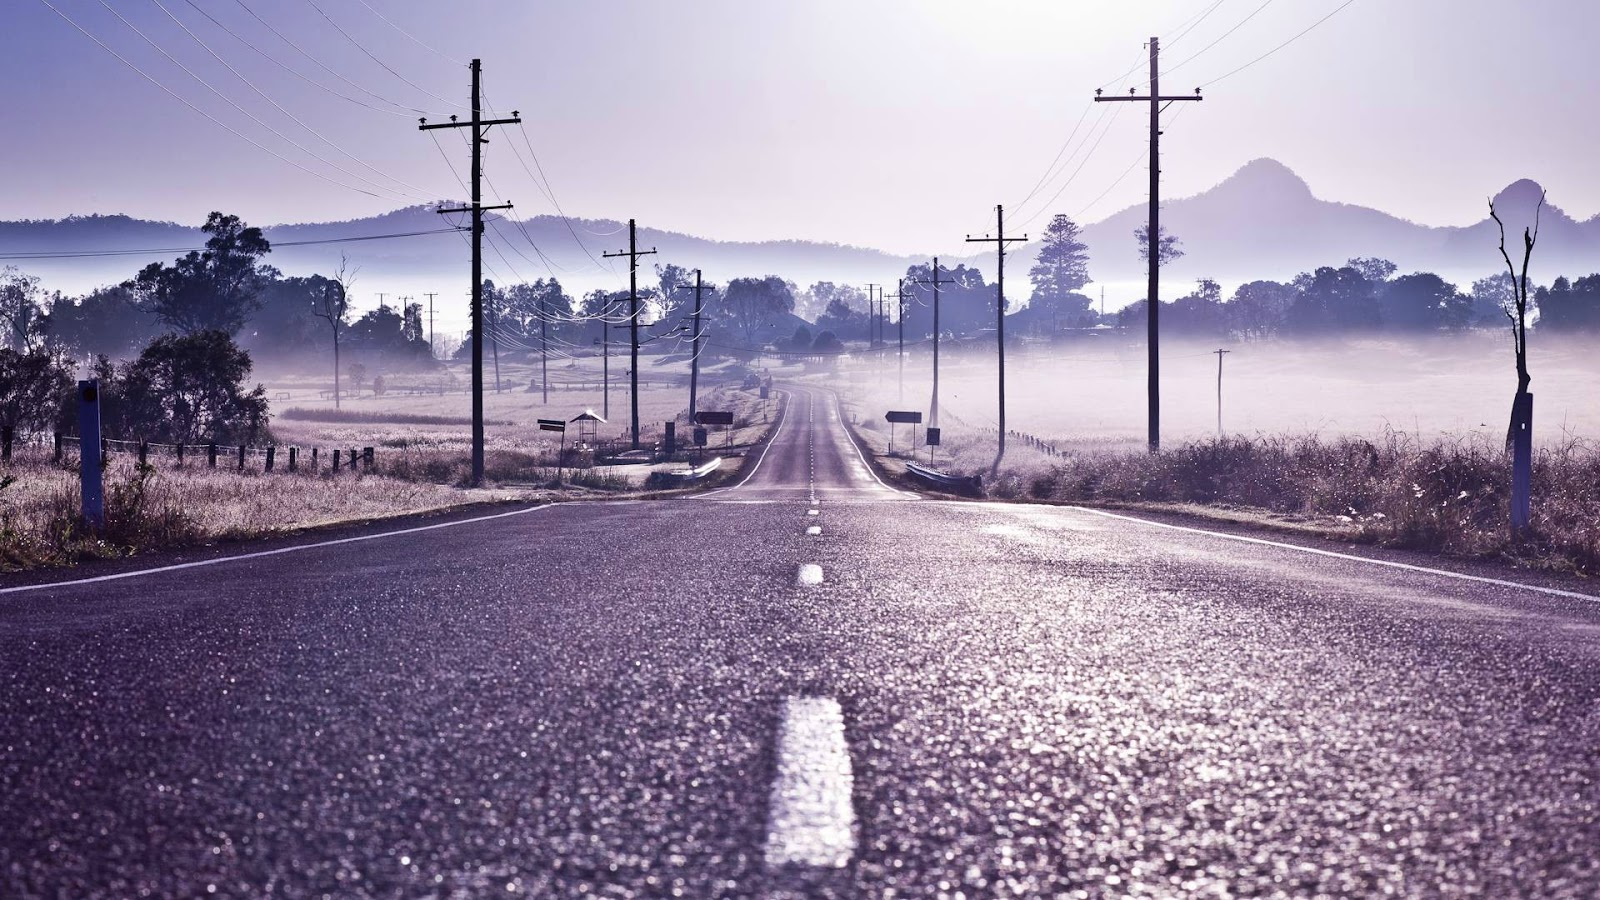 Road Wallpapers for Phones